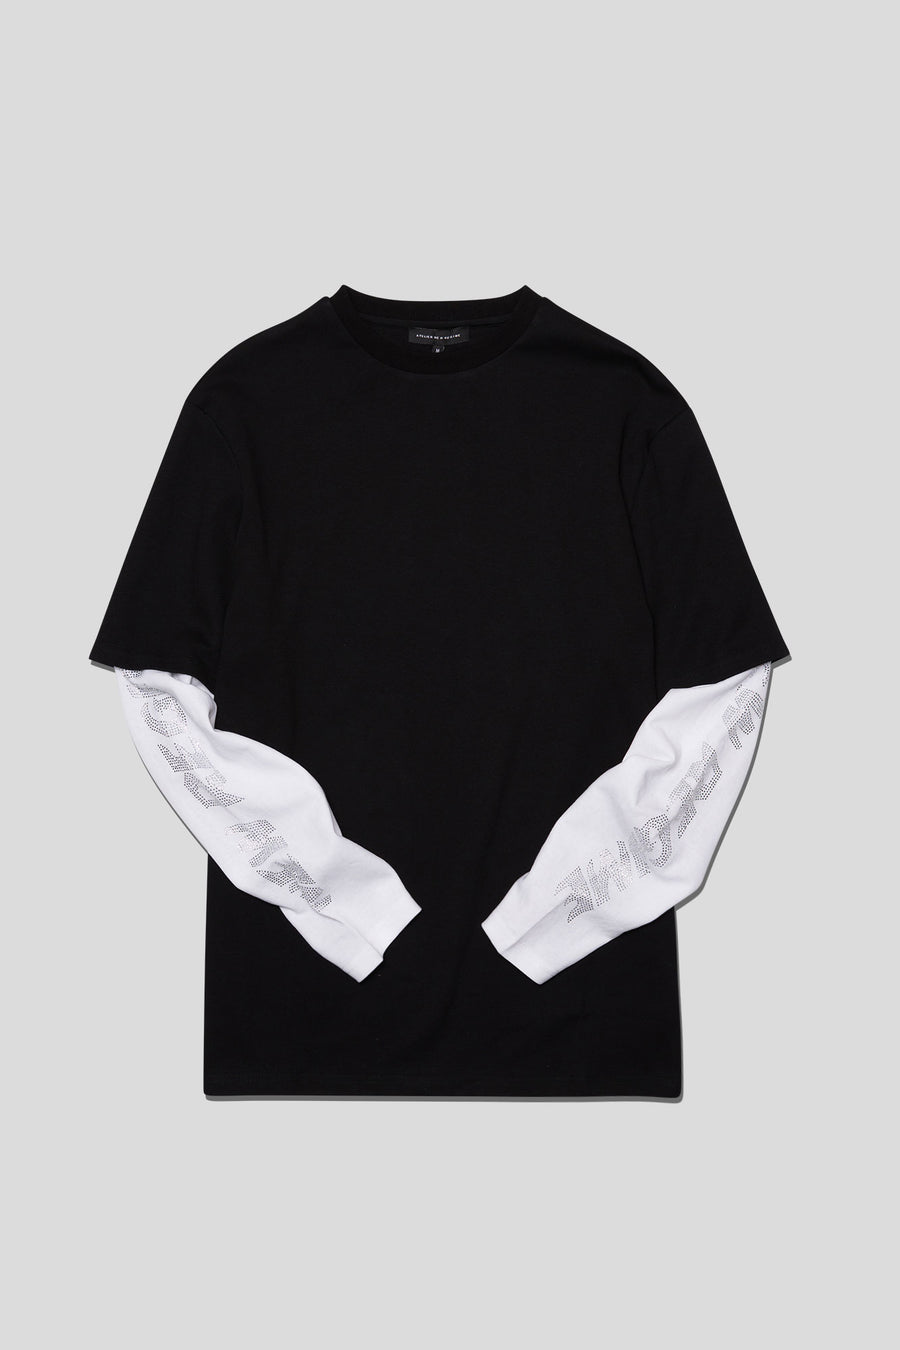 Atelier New Regime - Layered Logo L/S